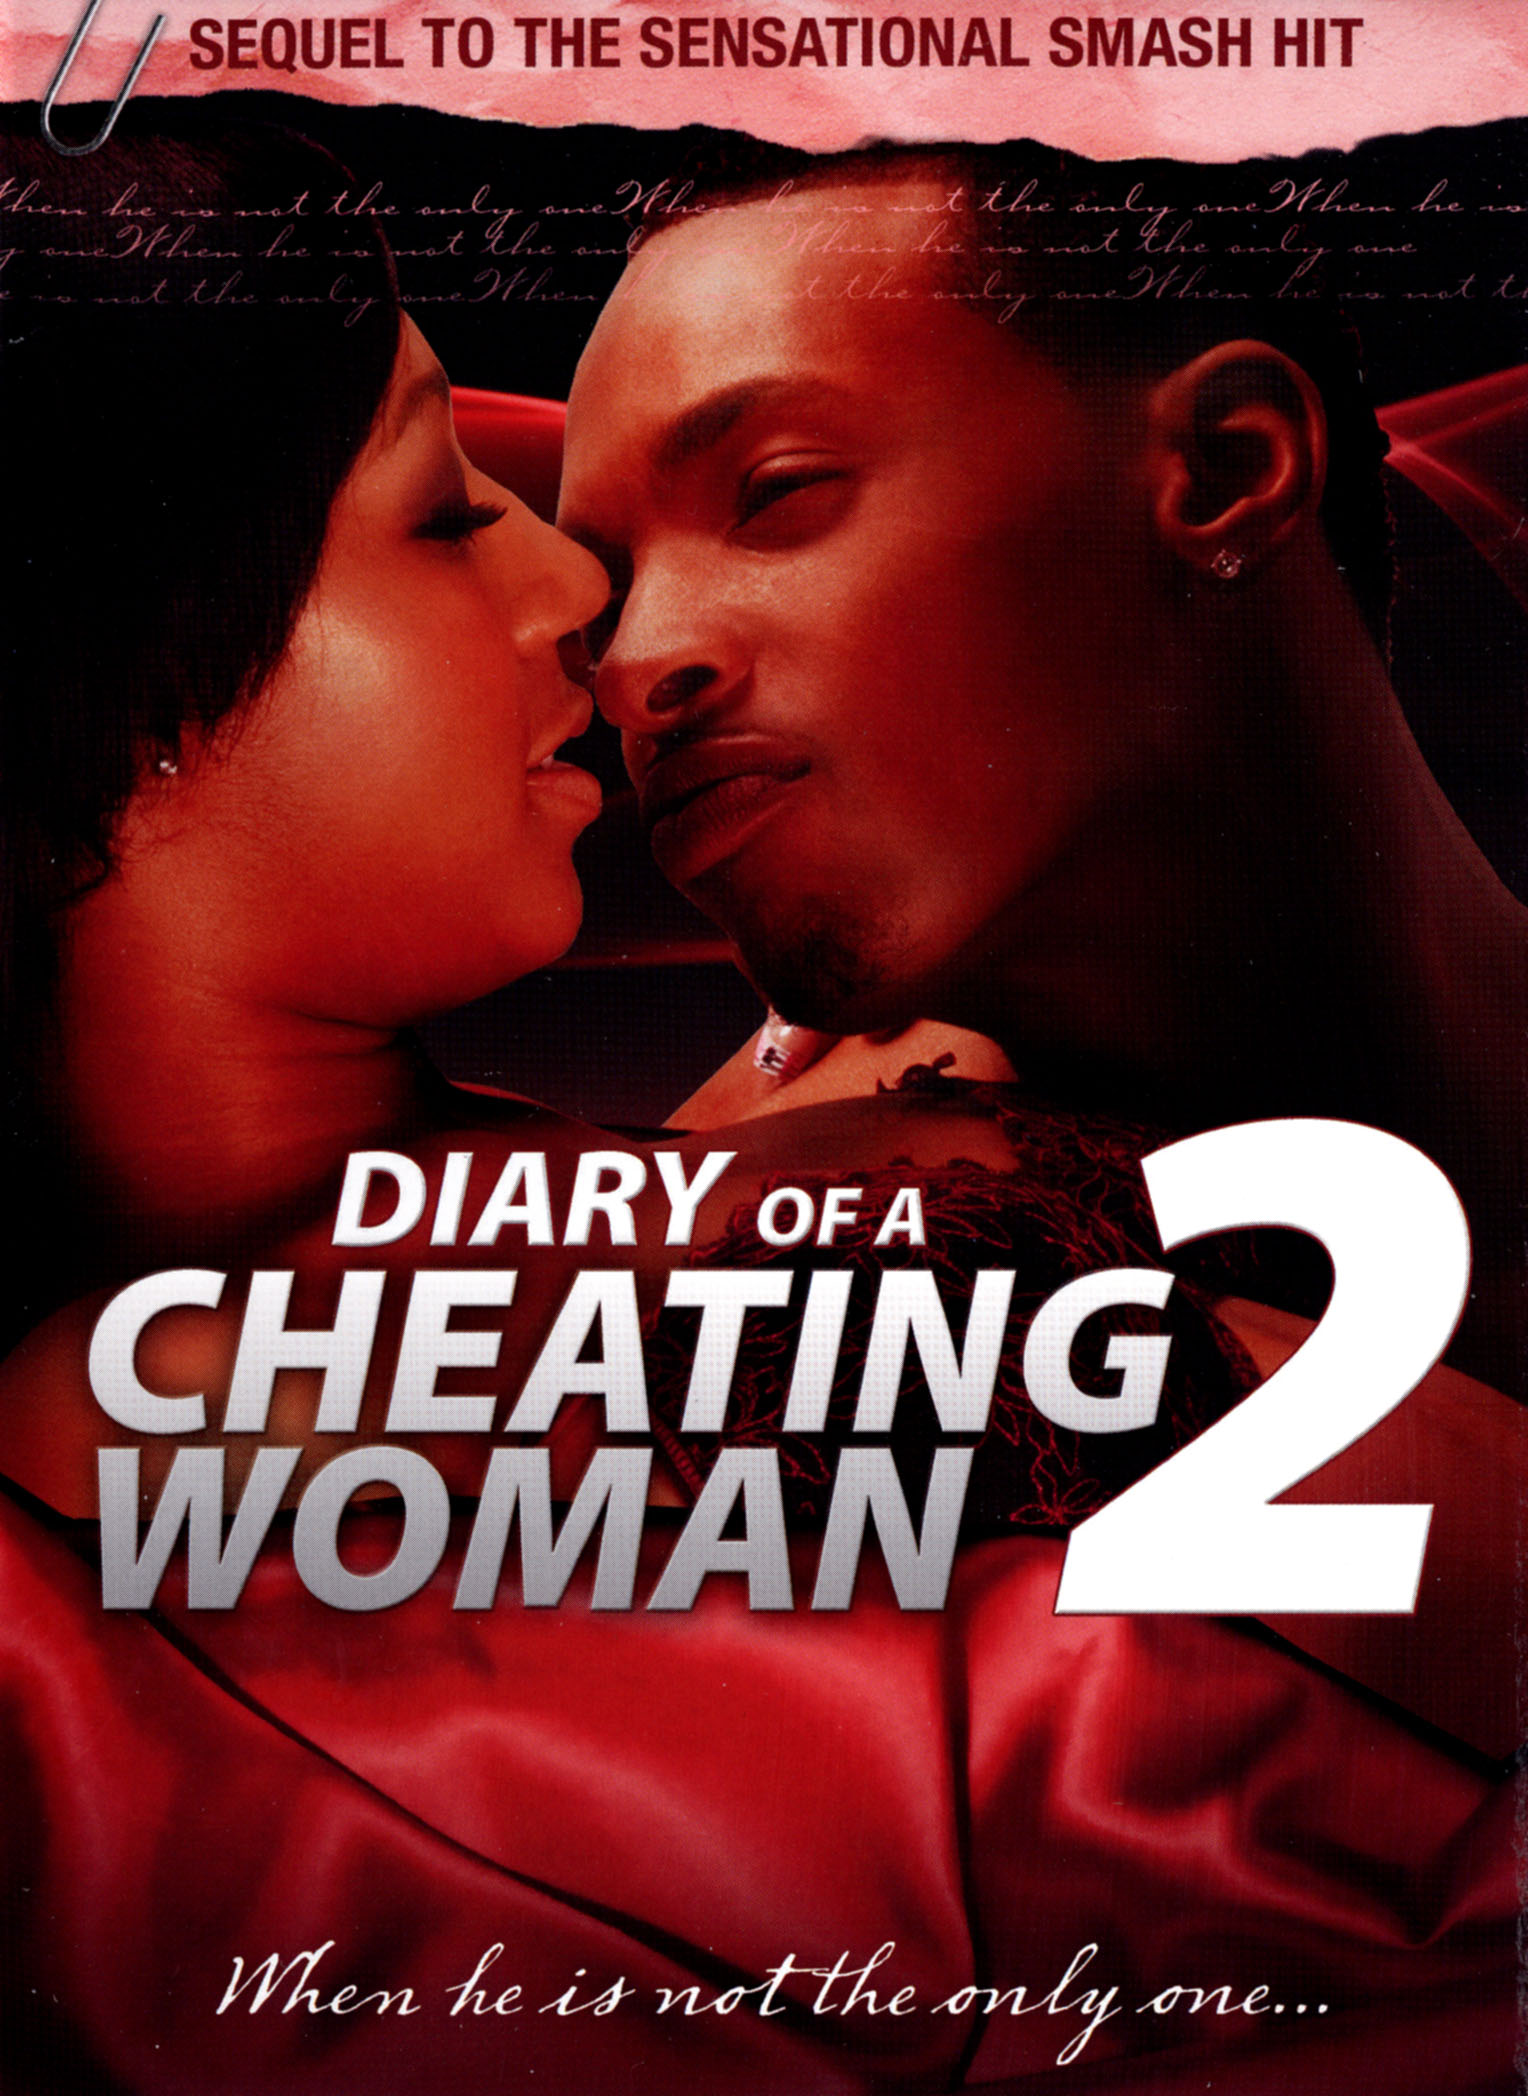 Diary of a Cheating Woman 2